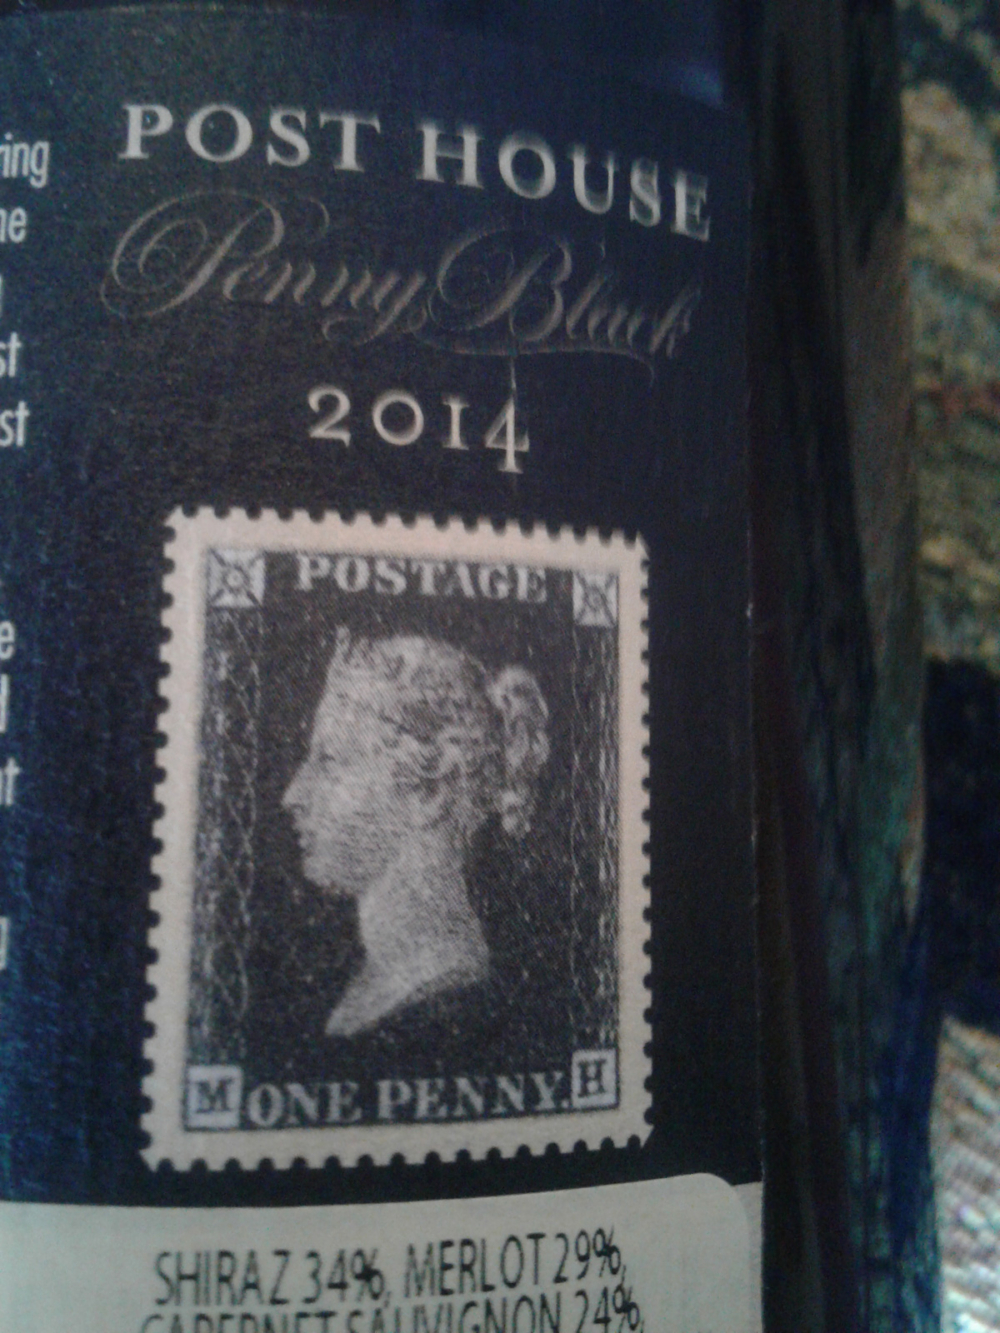 Every Post House wine carries a stamp. One of Queen Victoria graces the Penny Black bottle.